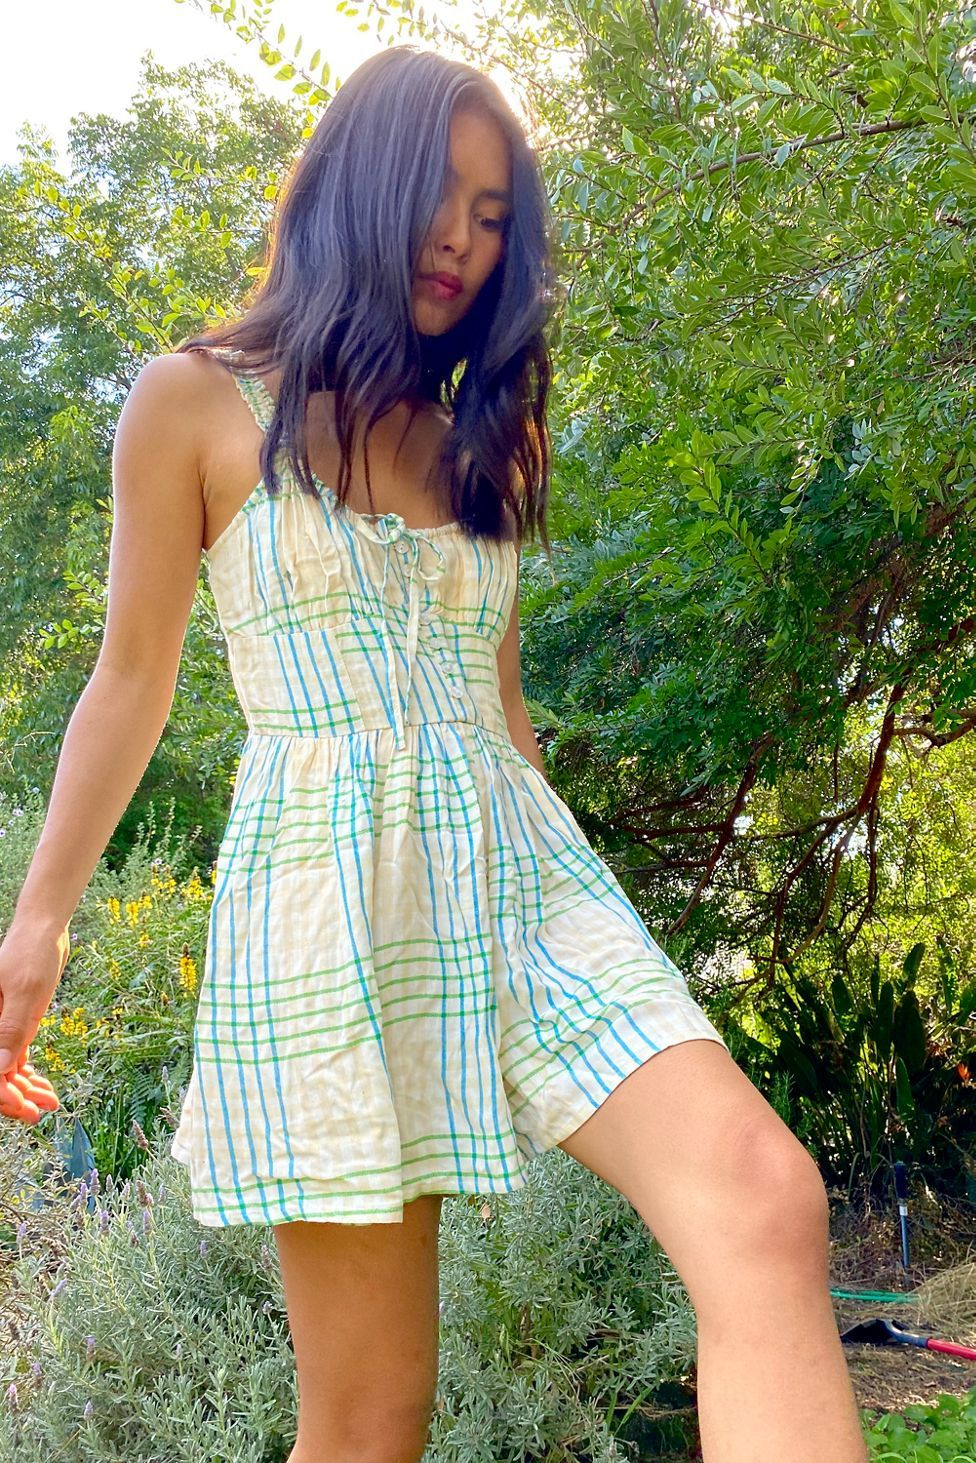 Uo Tate Tie Front Romper Rompers Urban Outfitters Fashion [ 1463 x 976 Pixel ]